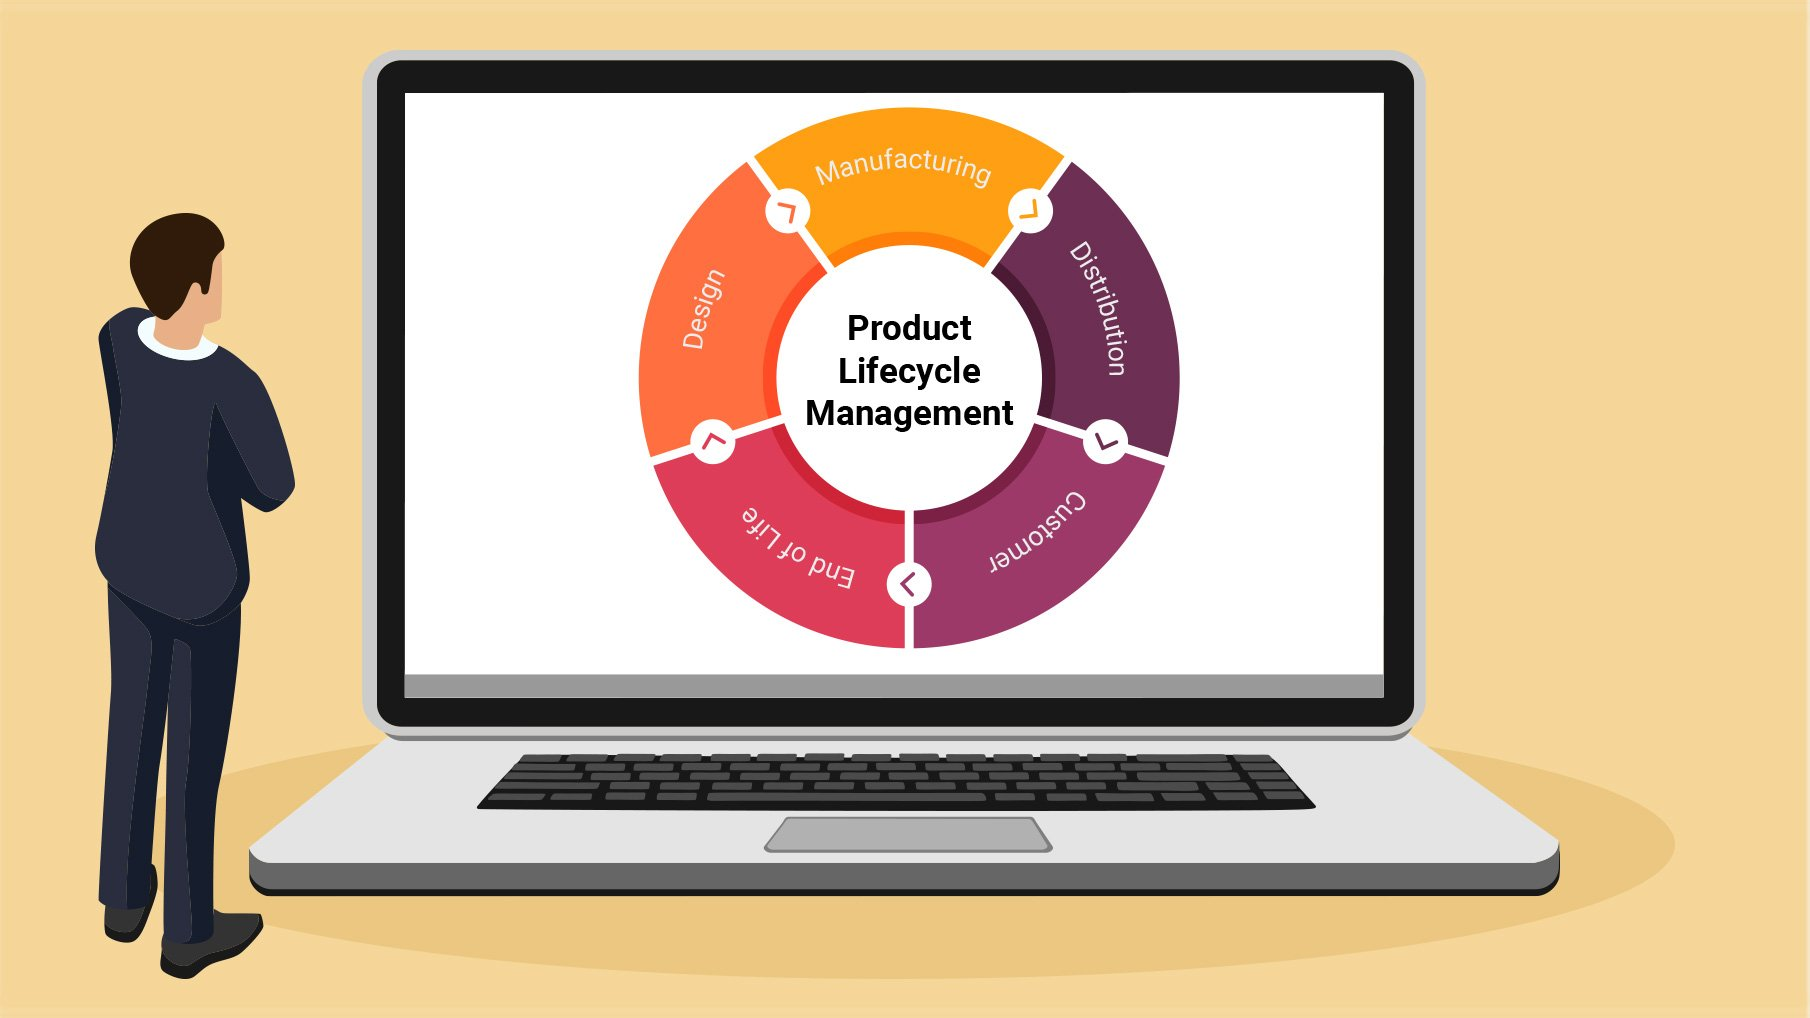 Product Lifecycle Management (PLM) Software